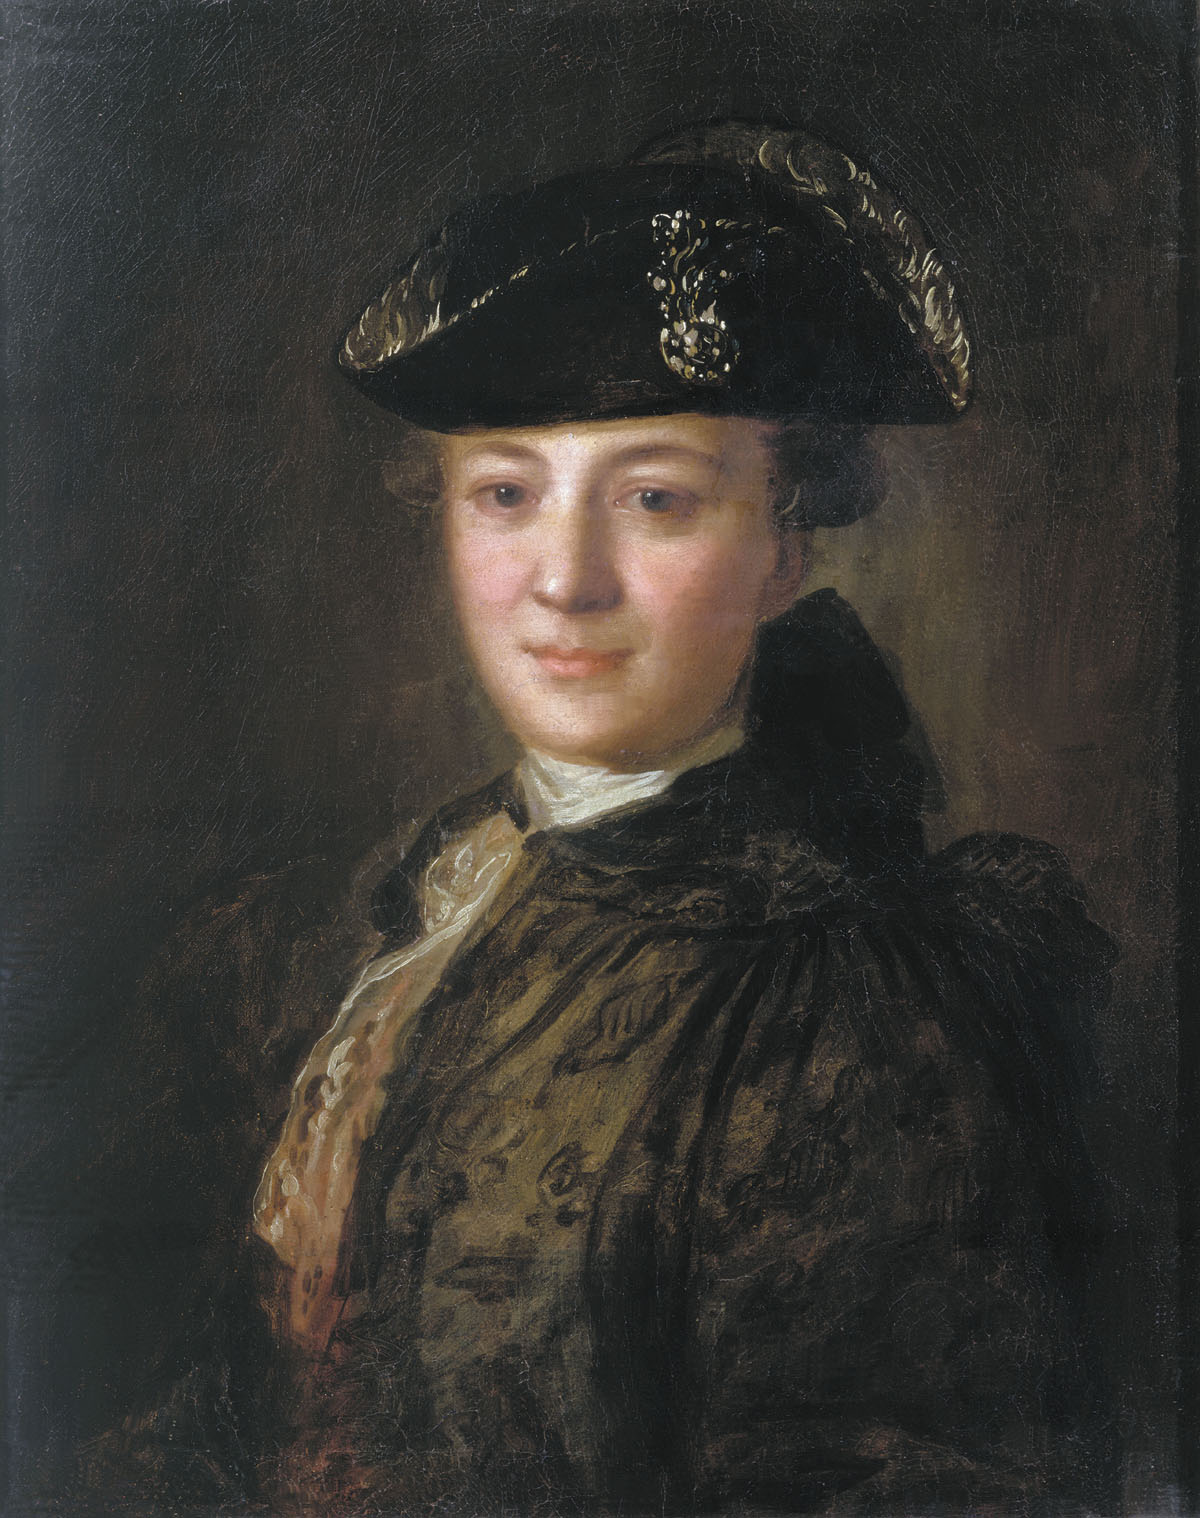 Portrait of an Unknown Man in a Cocked Hat, 1770